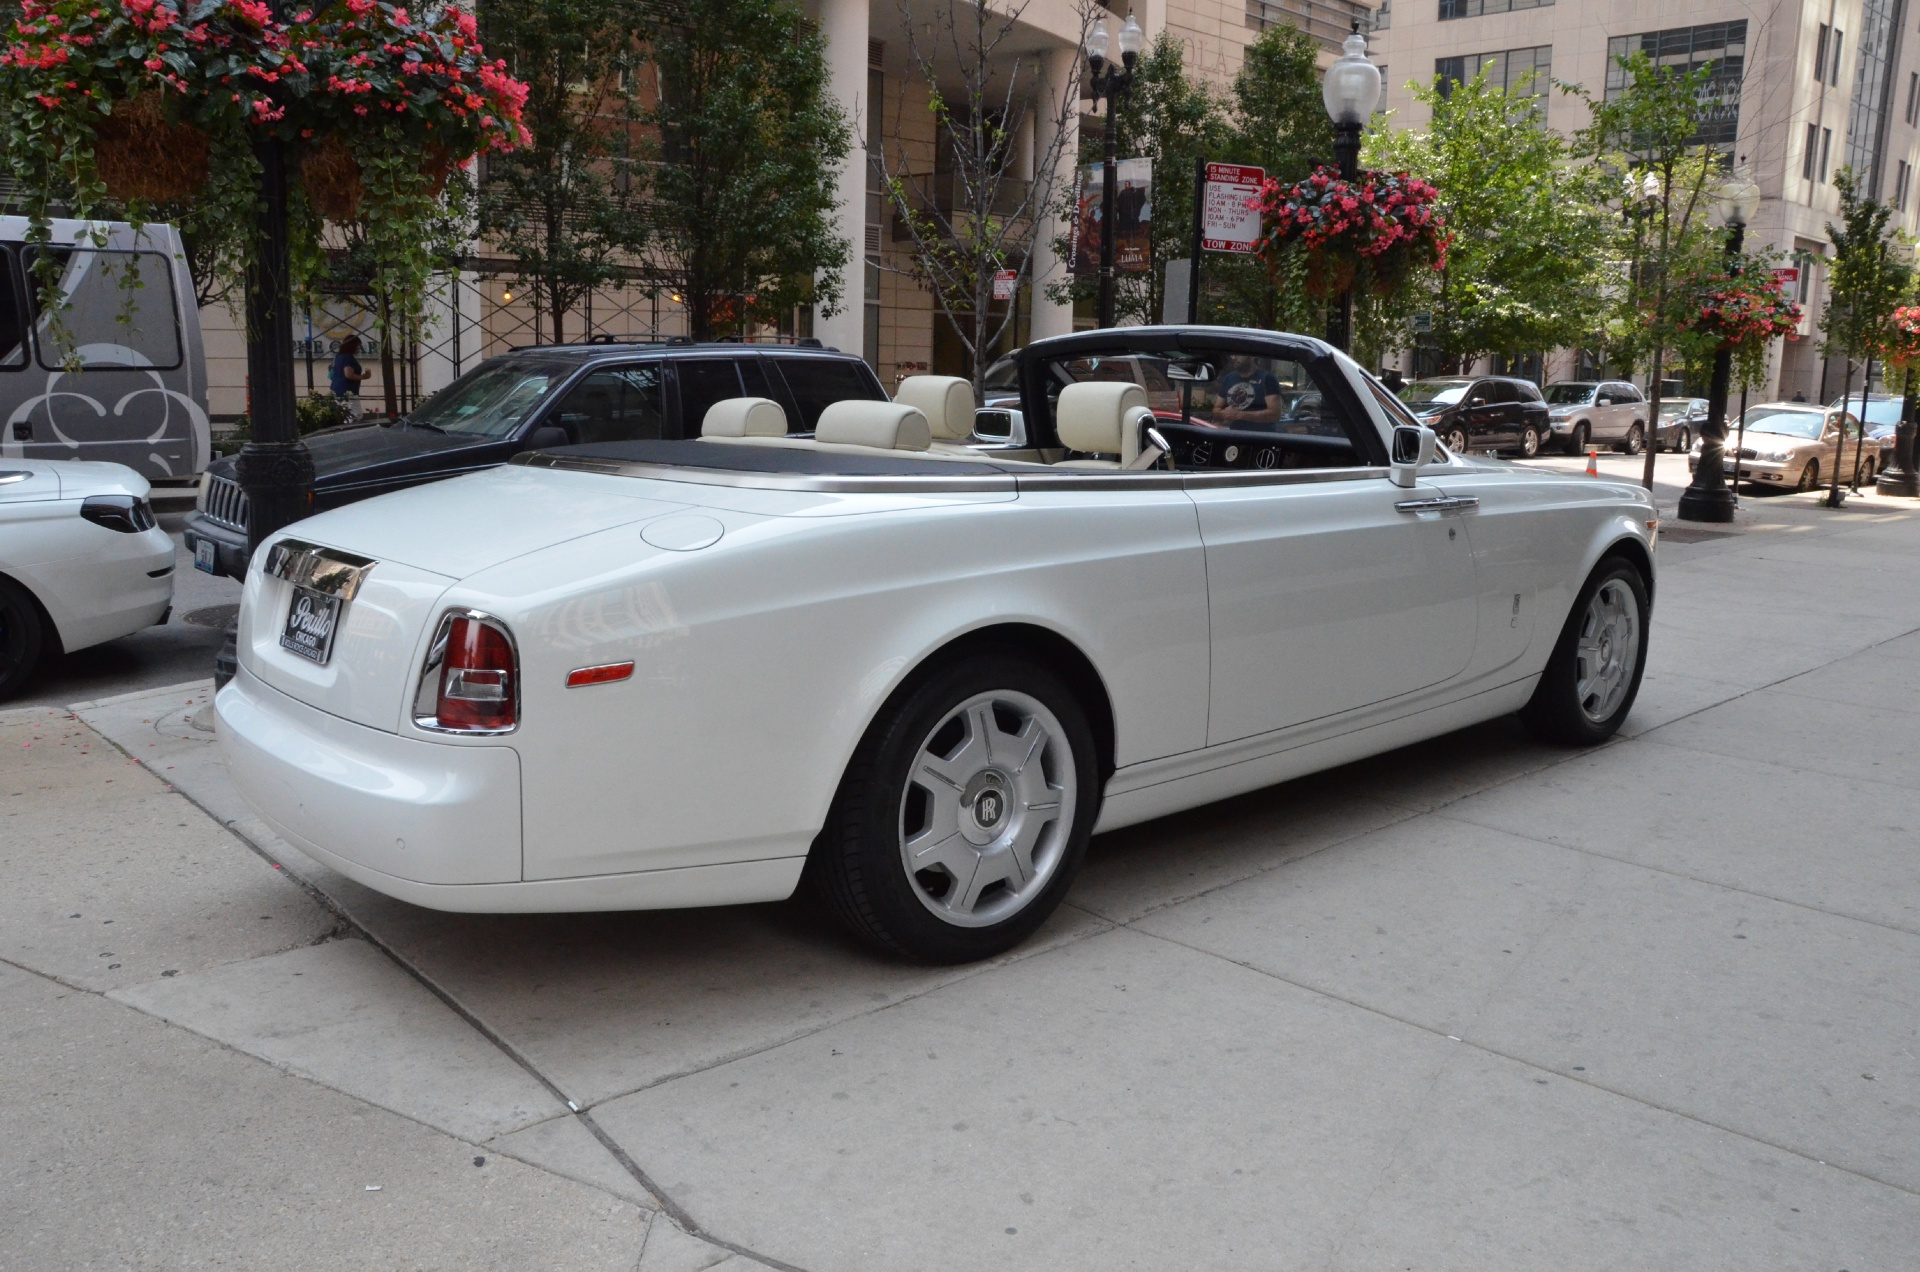 2009 Rolls-Royce Phantom Drophead Coupe Stock # GC-RICH35 for sale ...